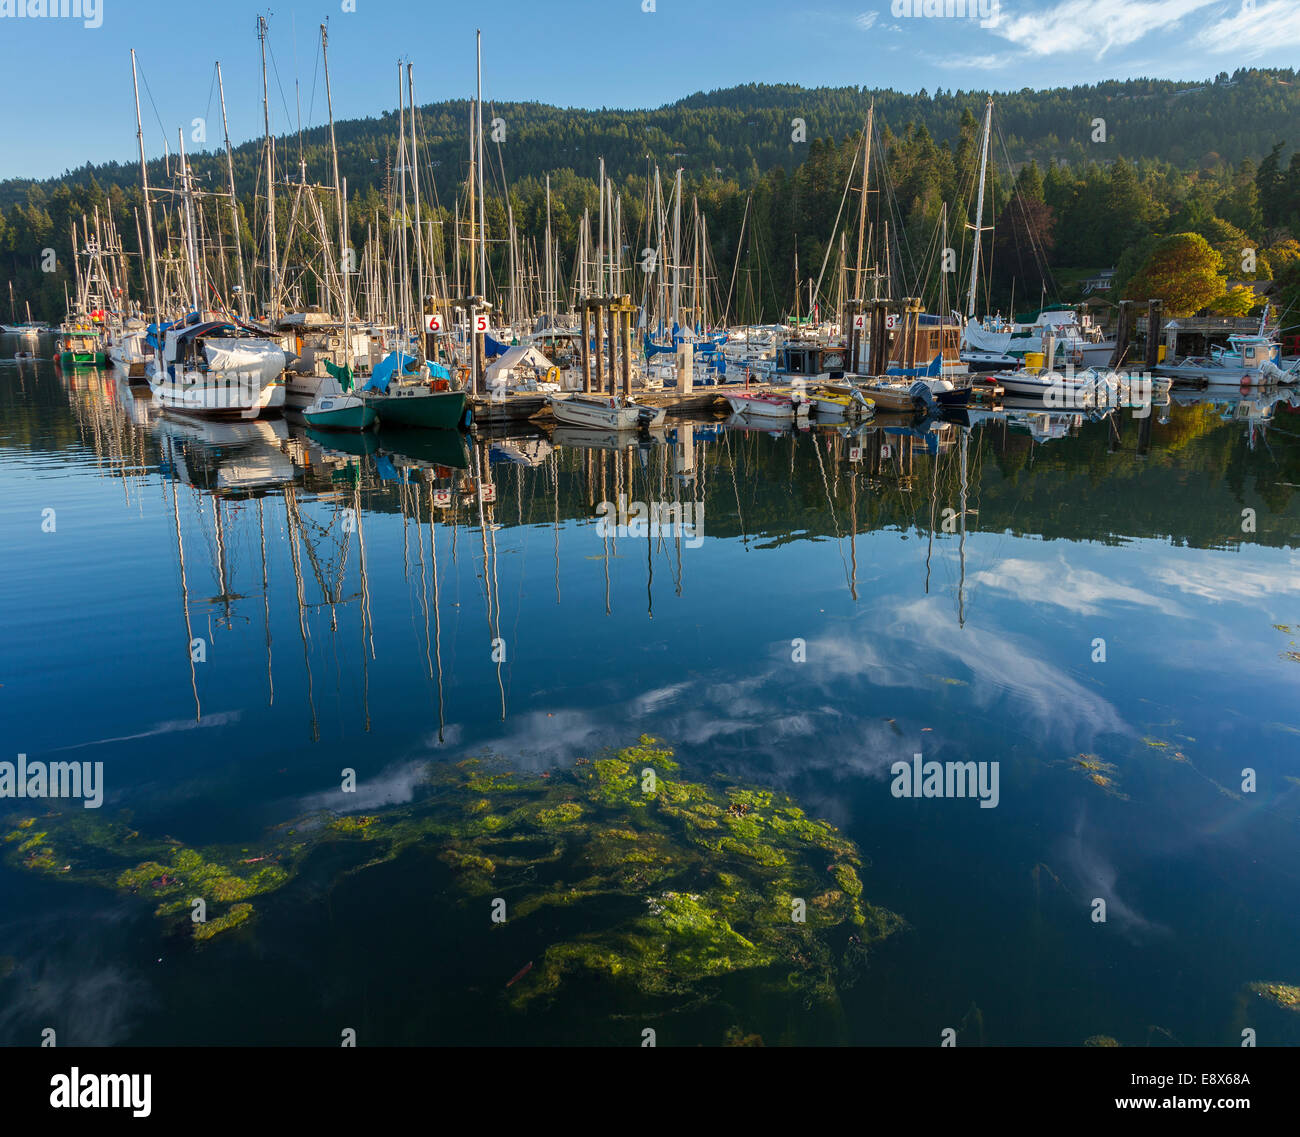 British Columbia Canada View Of Boats In Ganges Harbor